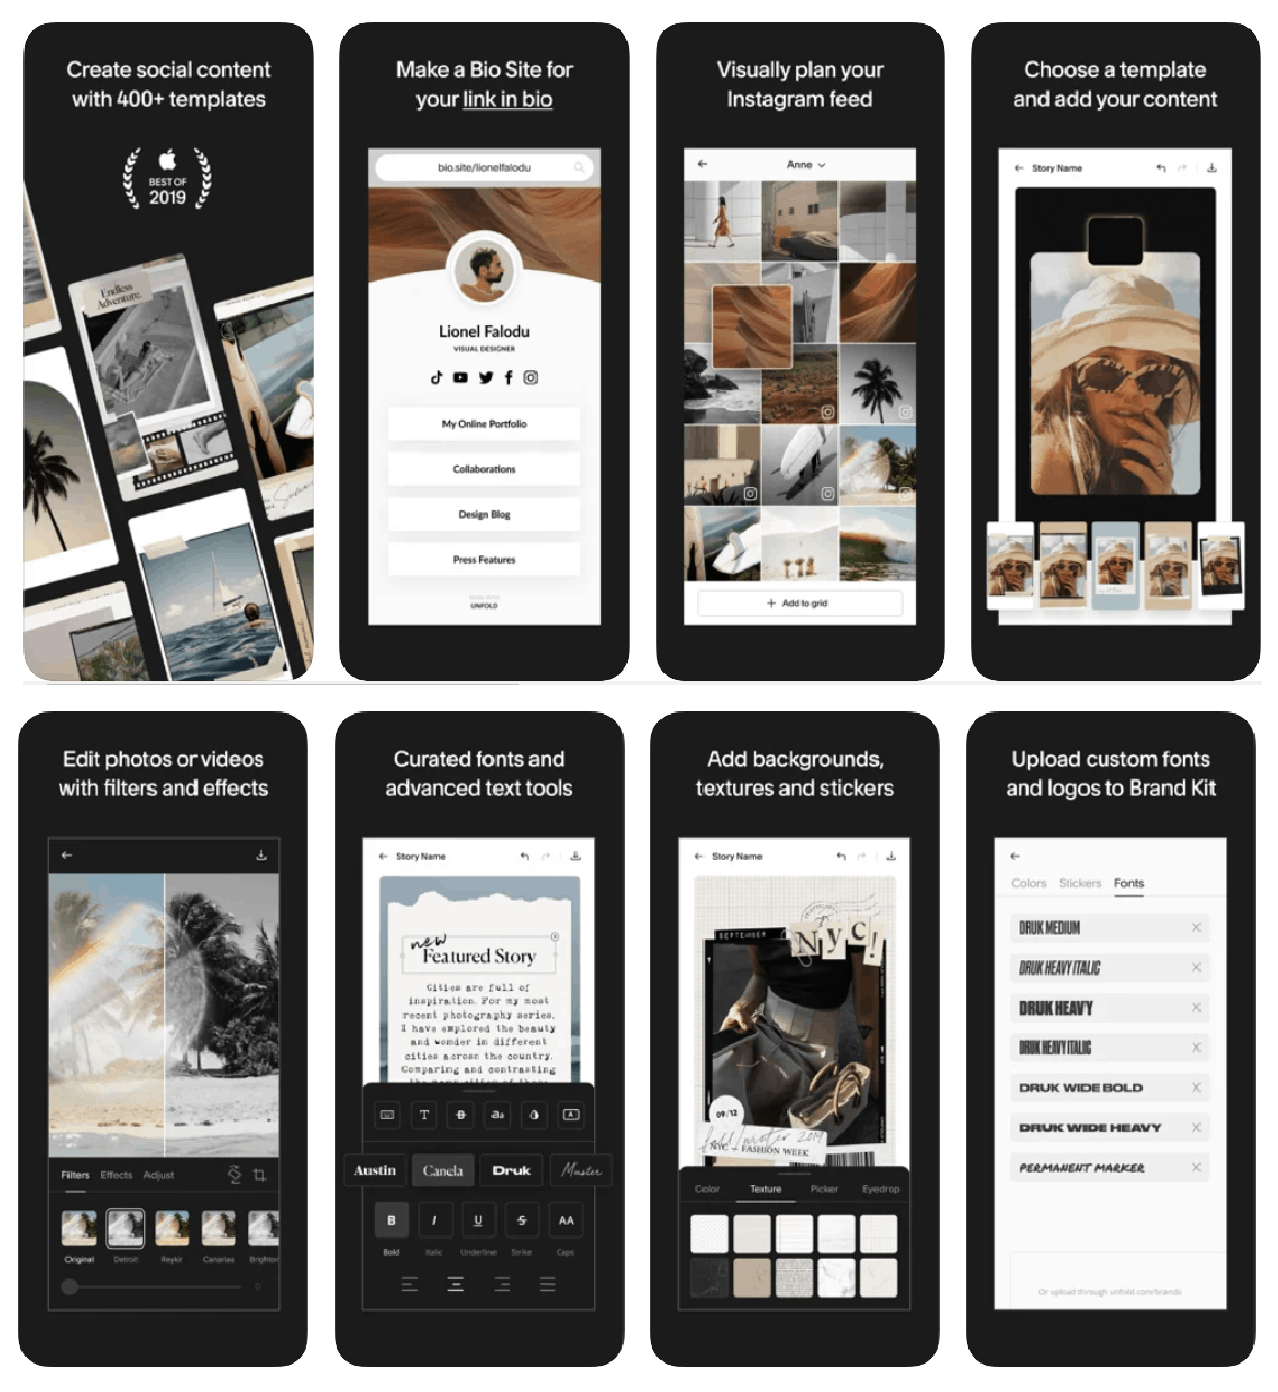 Top 10 Mobile-Editing Instagram Tools To Create Killer Images 9